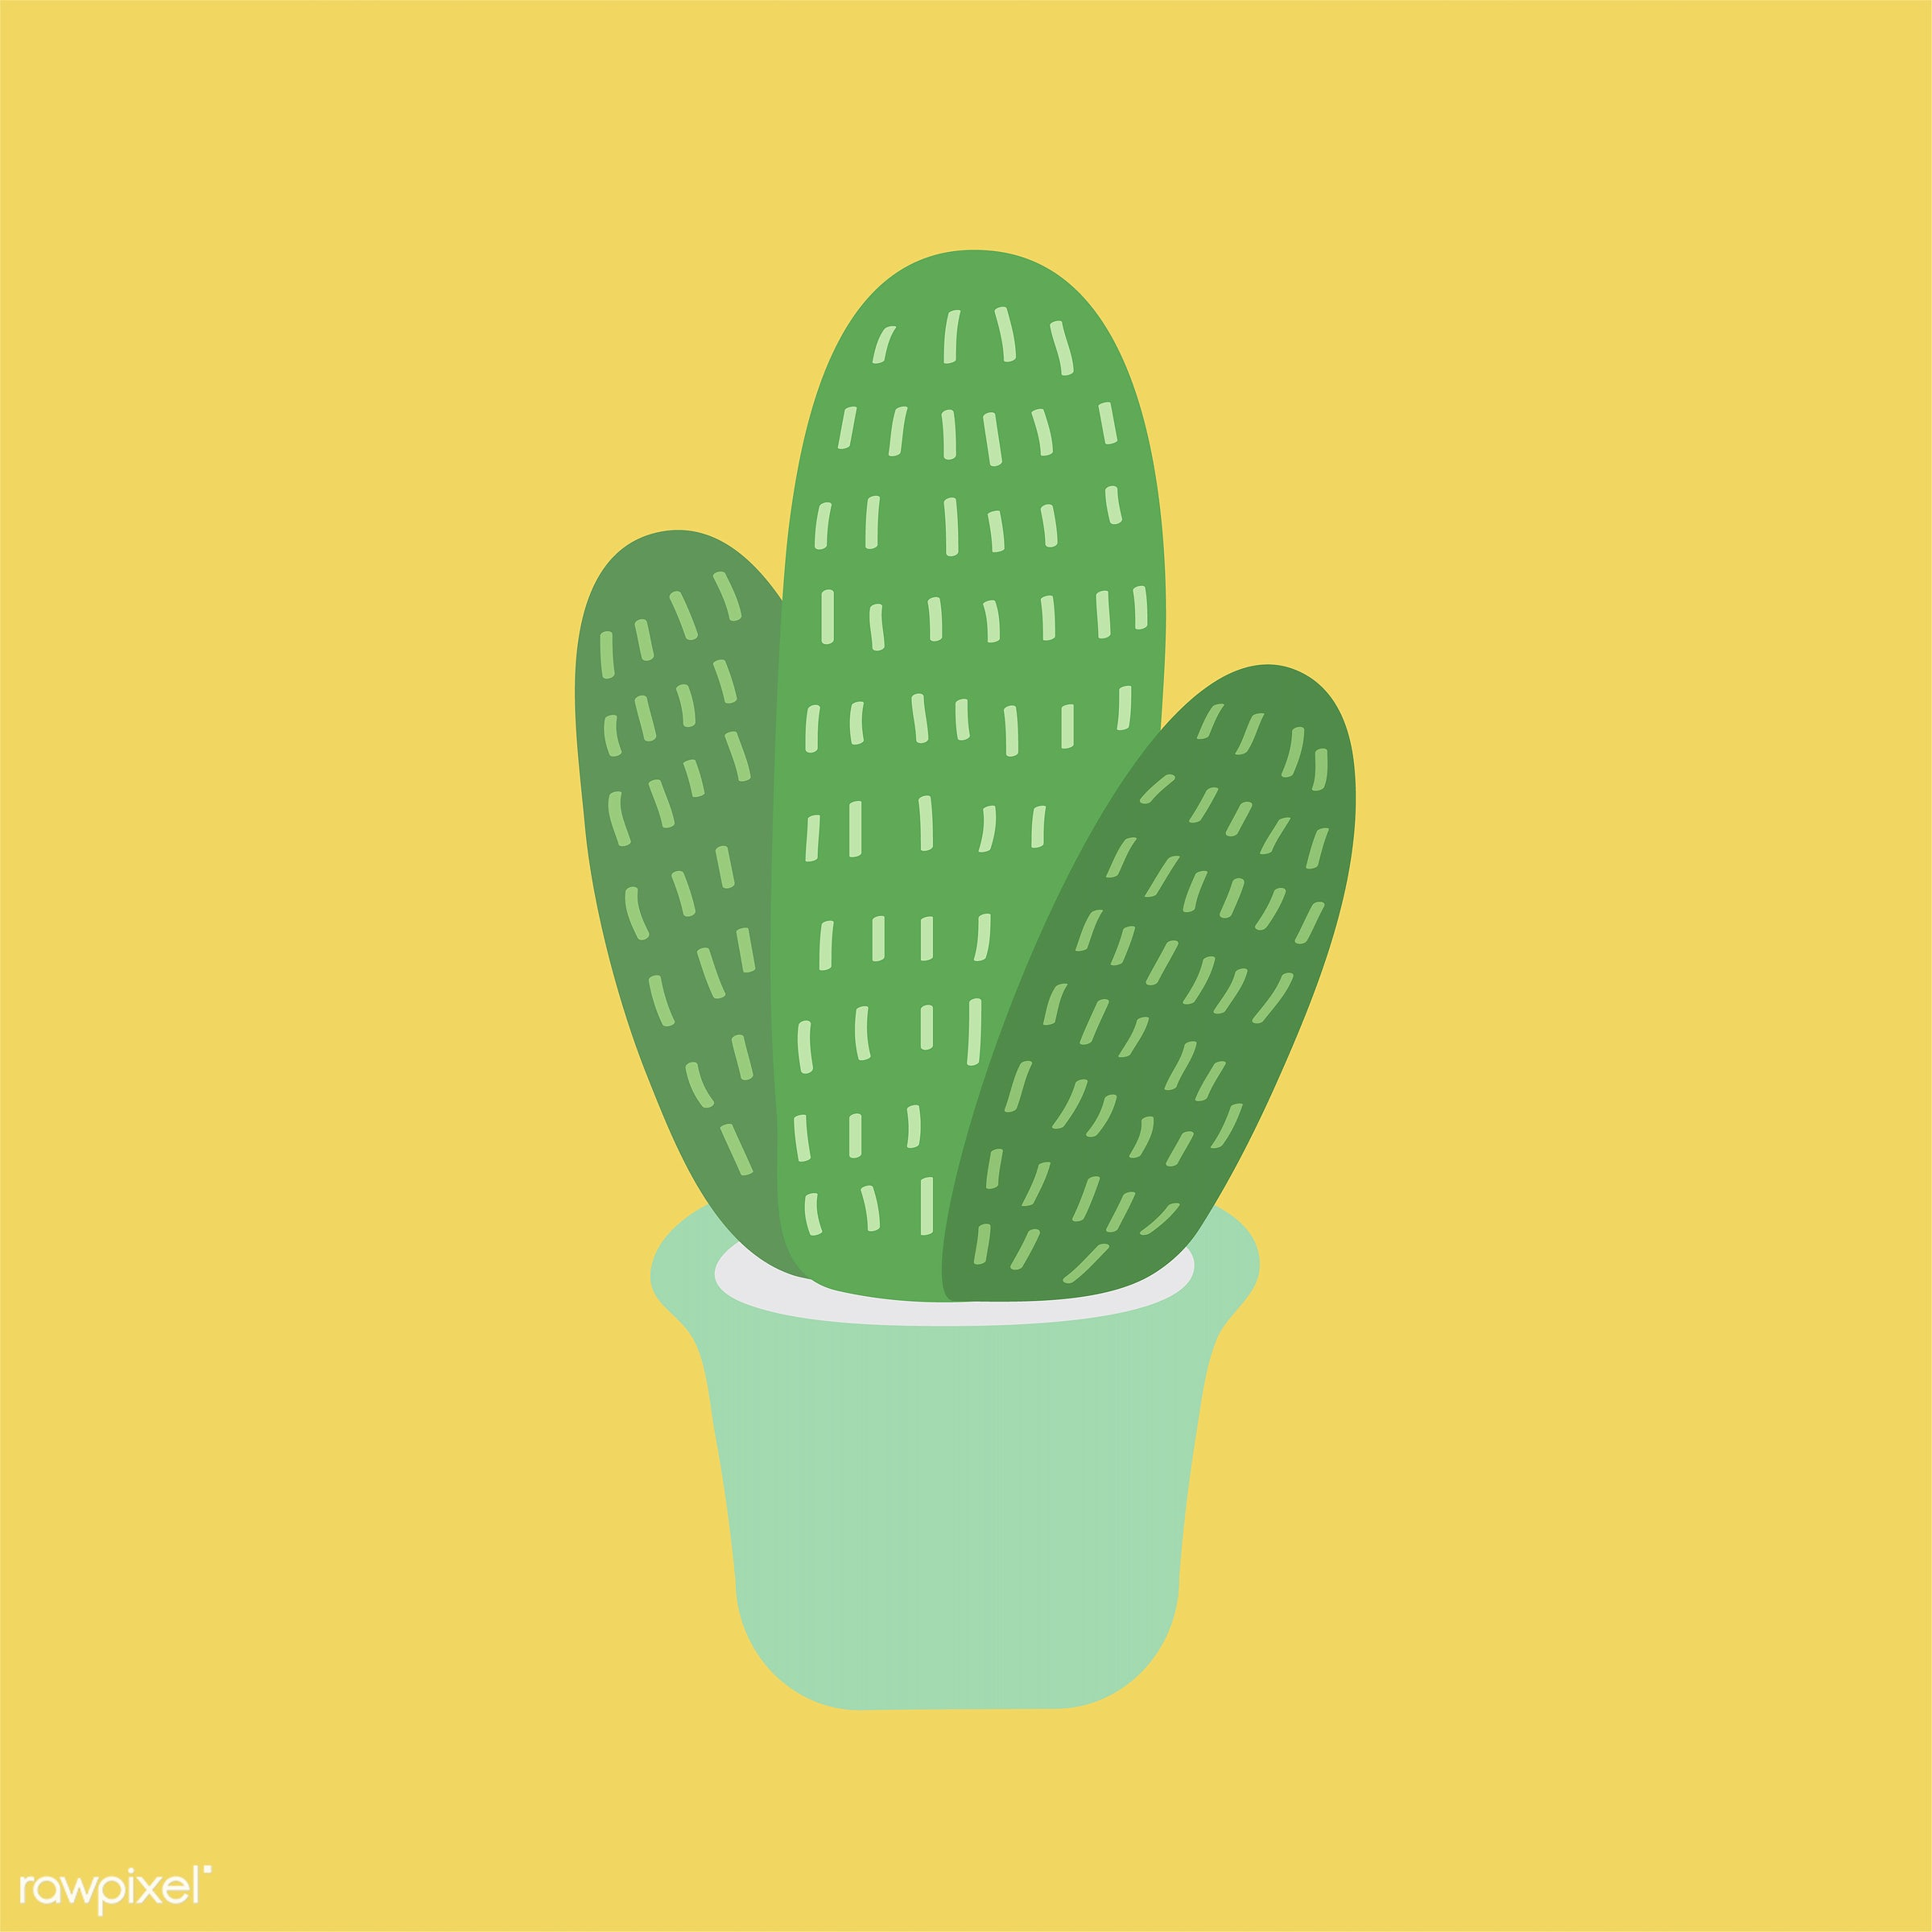 Collection of technology vectors - vector, illustration, graphic, cute, sweet, girly, pastel, cactus, cacti, plant